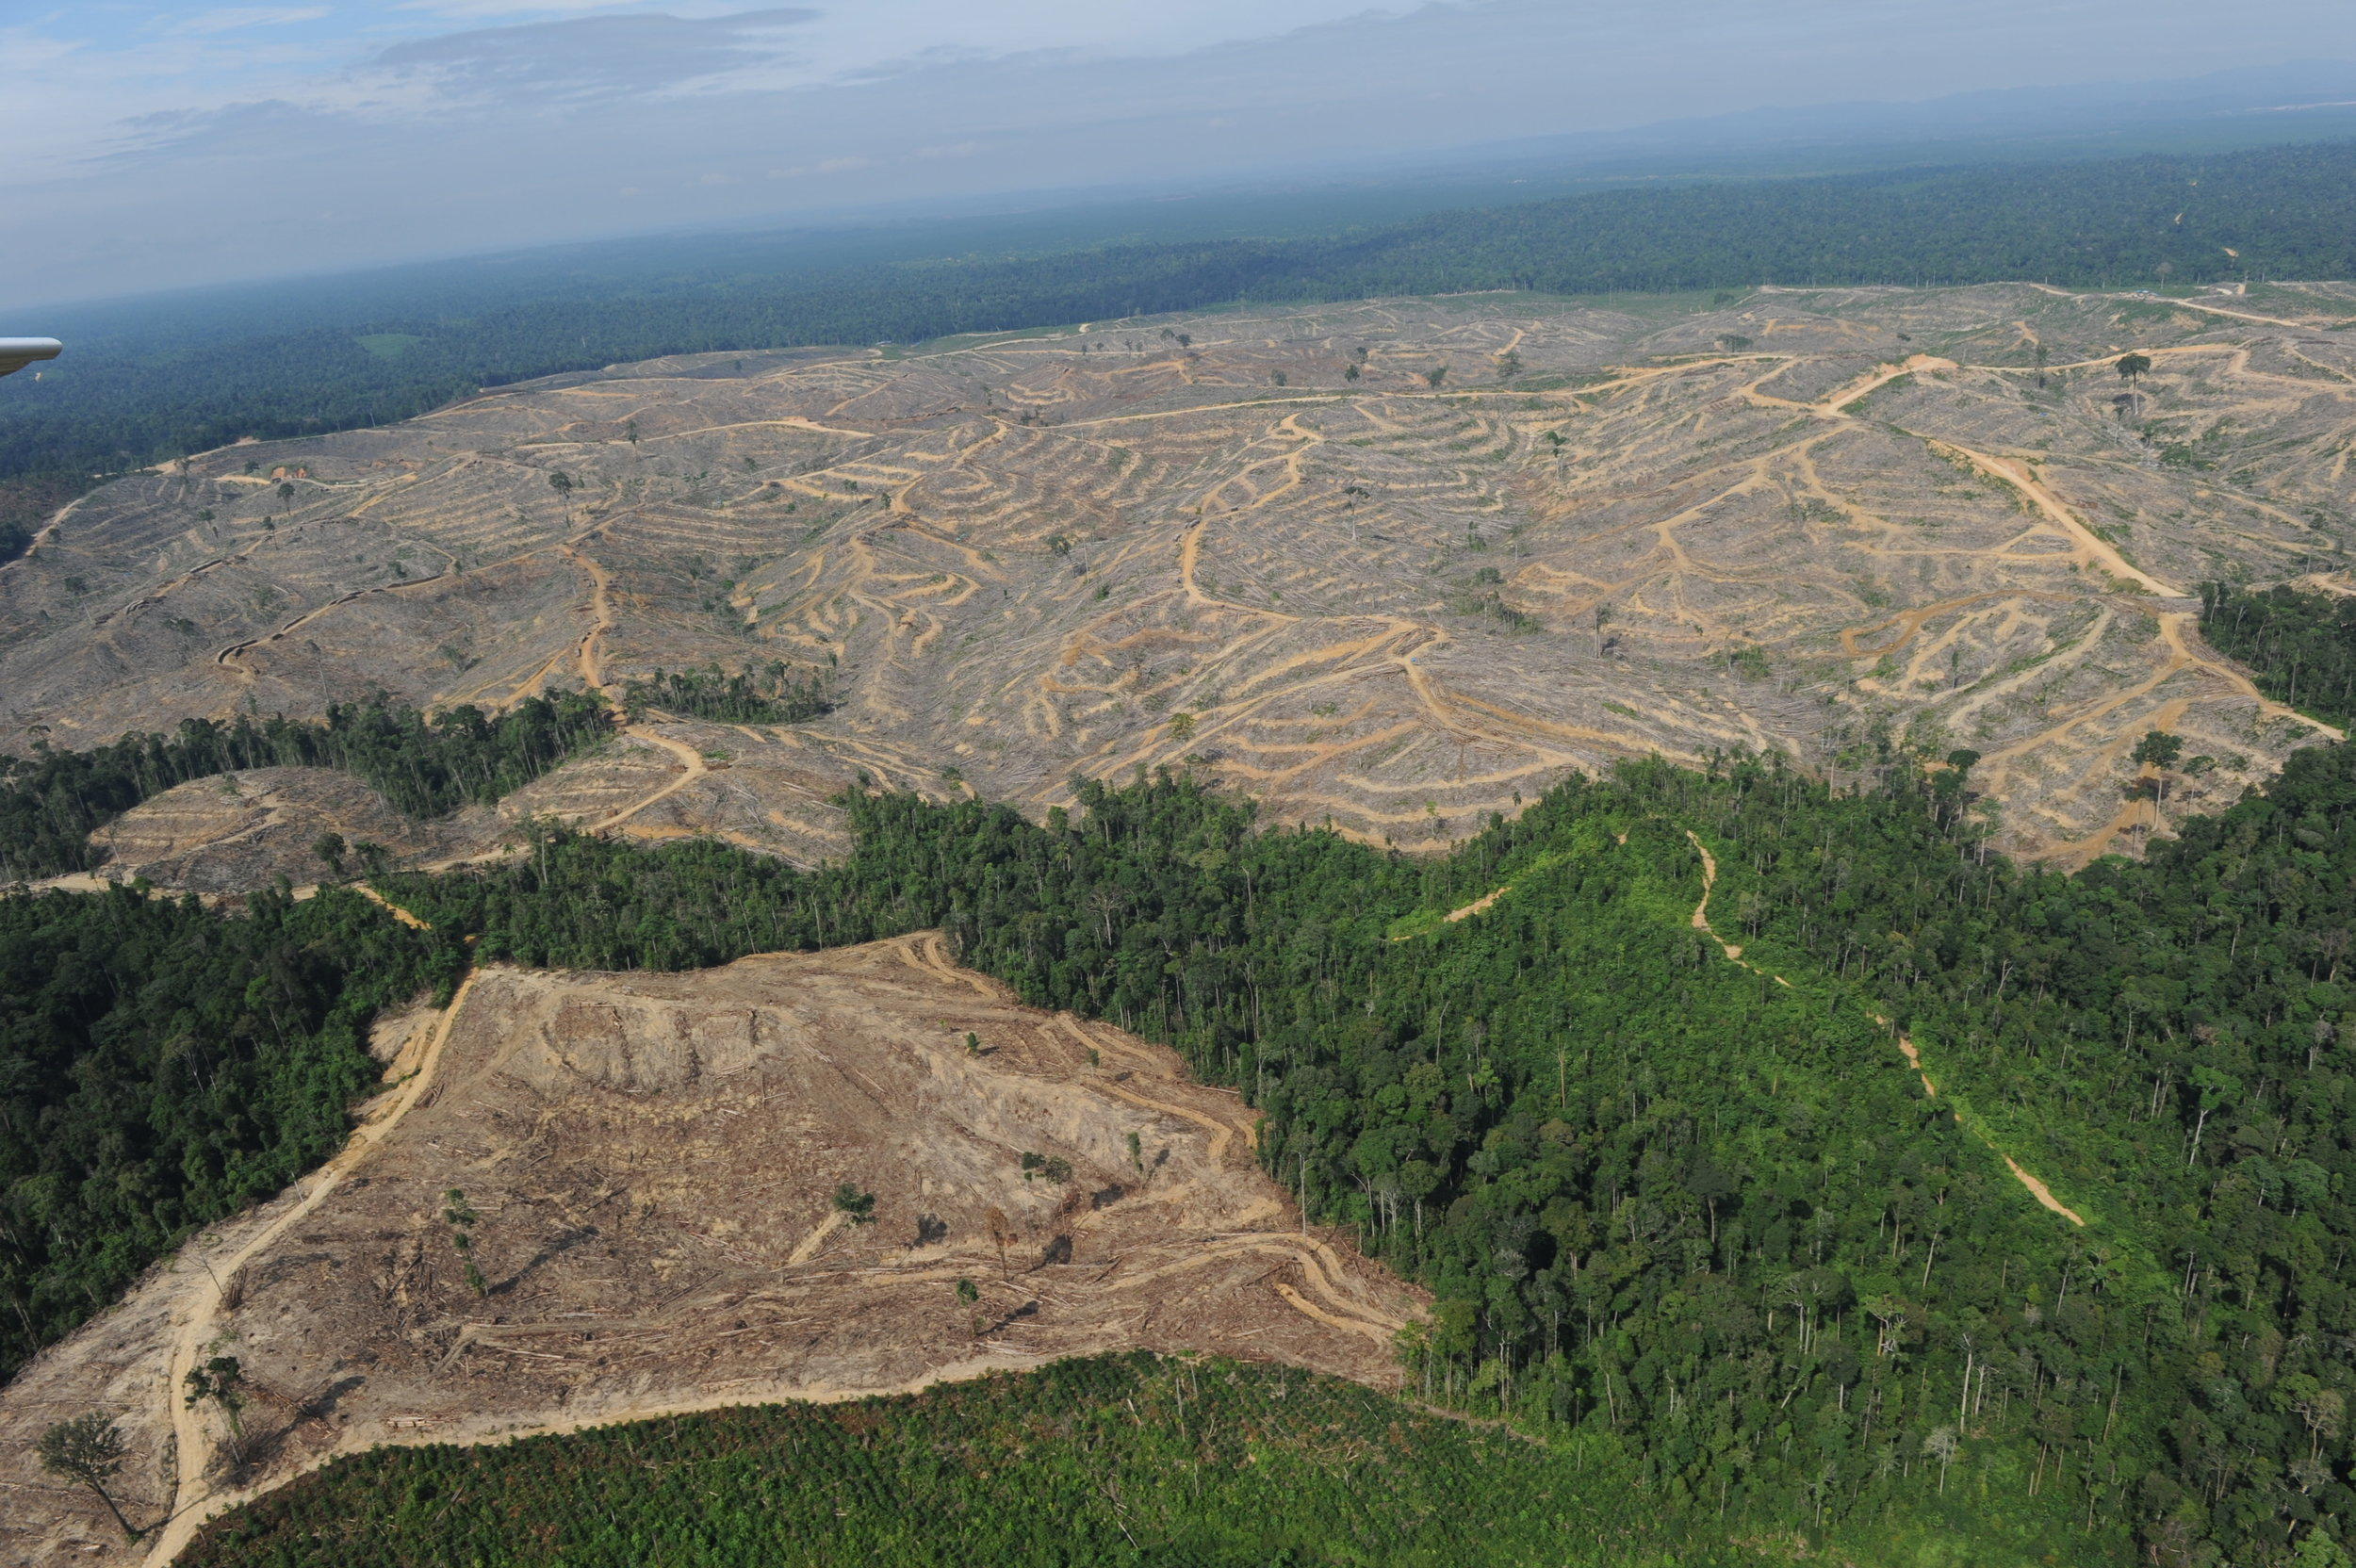 IN THE PAST 30 YEARS, OVER 50% OF THE EARTH'S ORIGINAL FOREST COVER HAS BEEN DESTROYED FOR HUMAN PRODUCTS